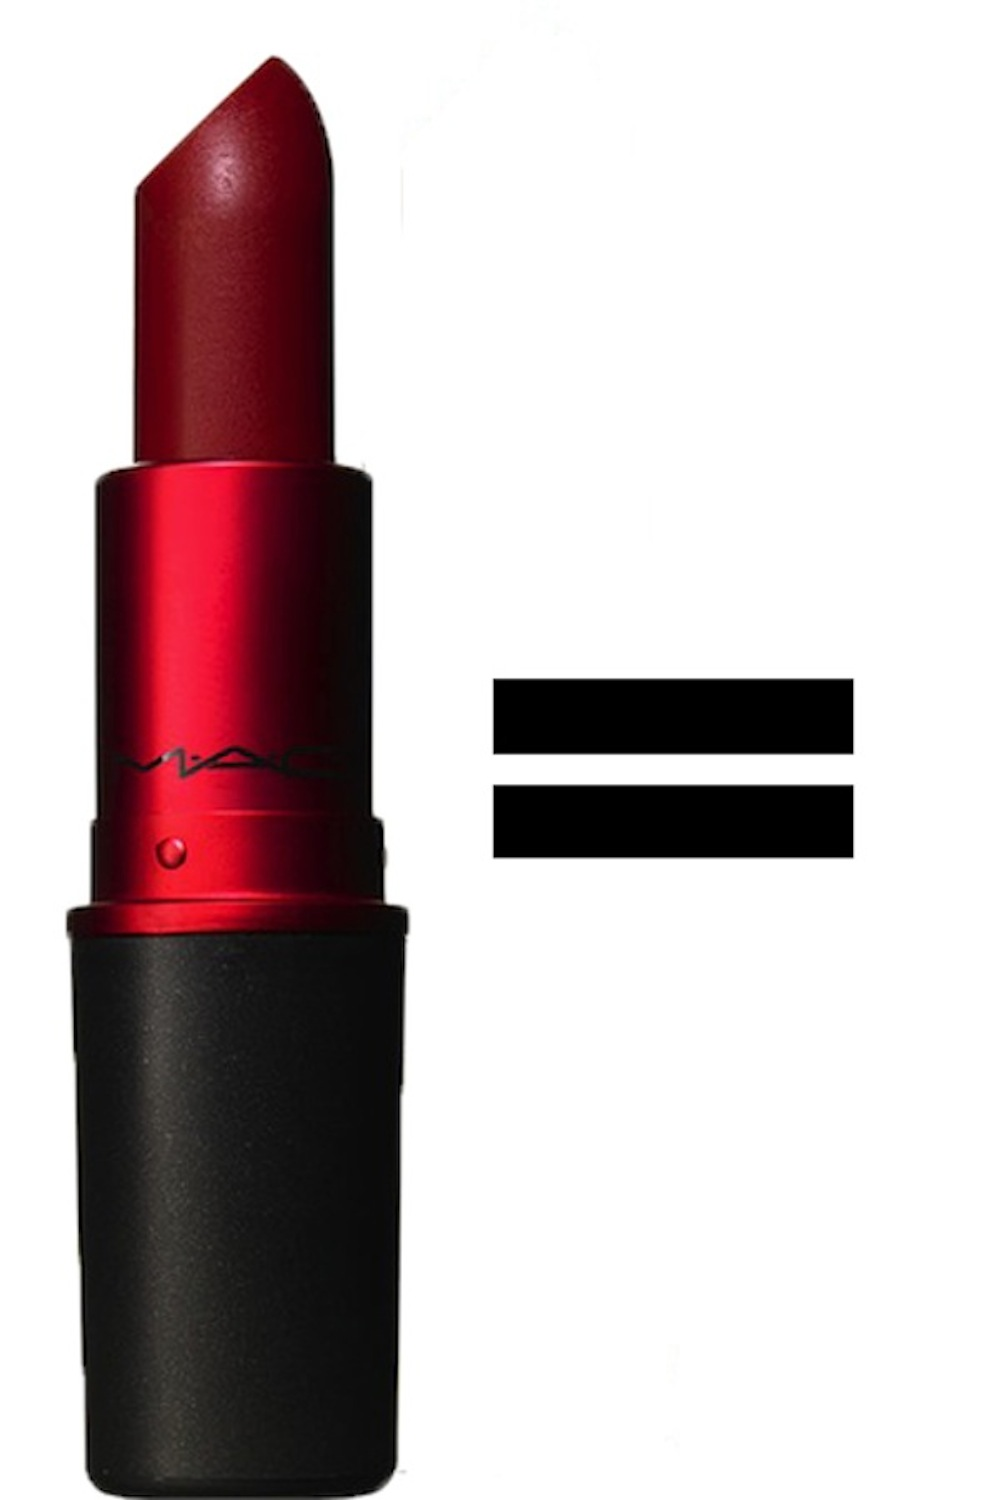 301 moved permanently - Mac diva lipstick price ...